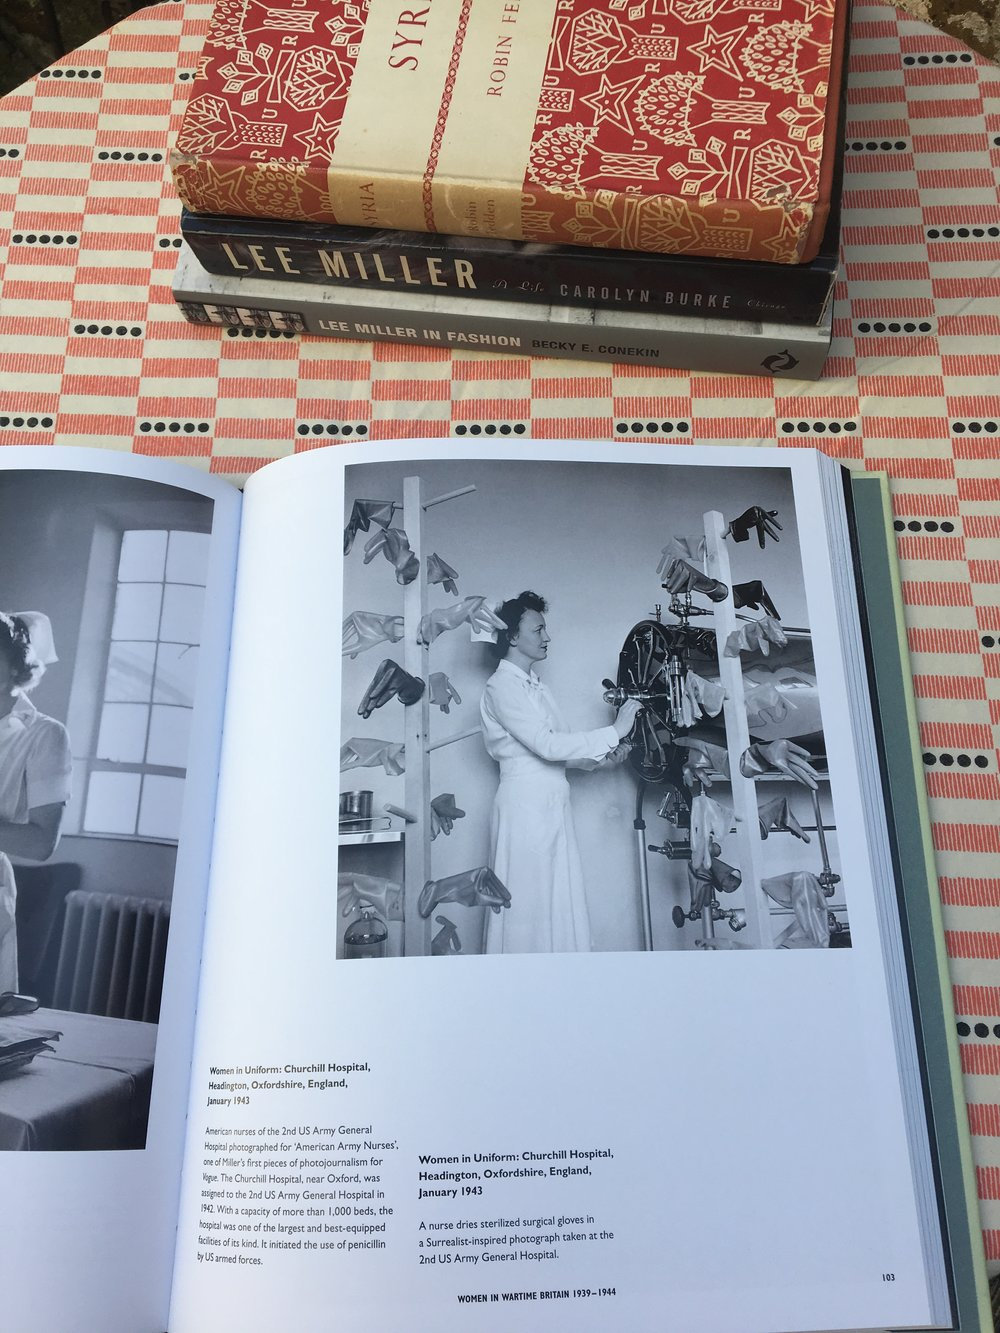 Some of my books about Lee Miller